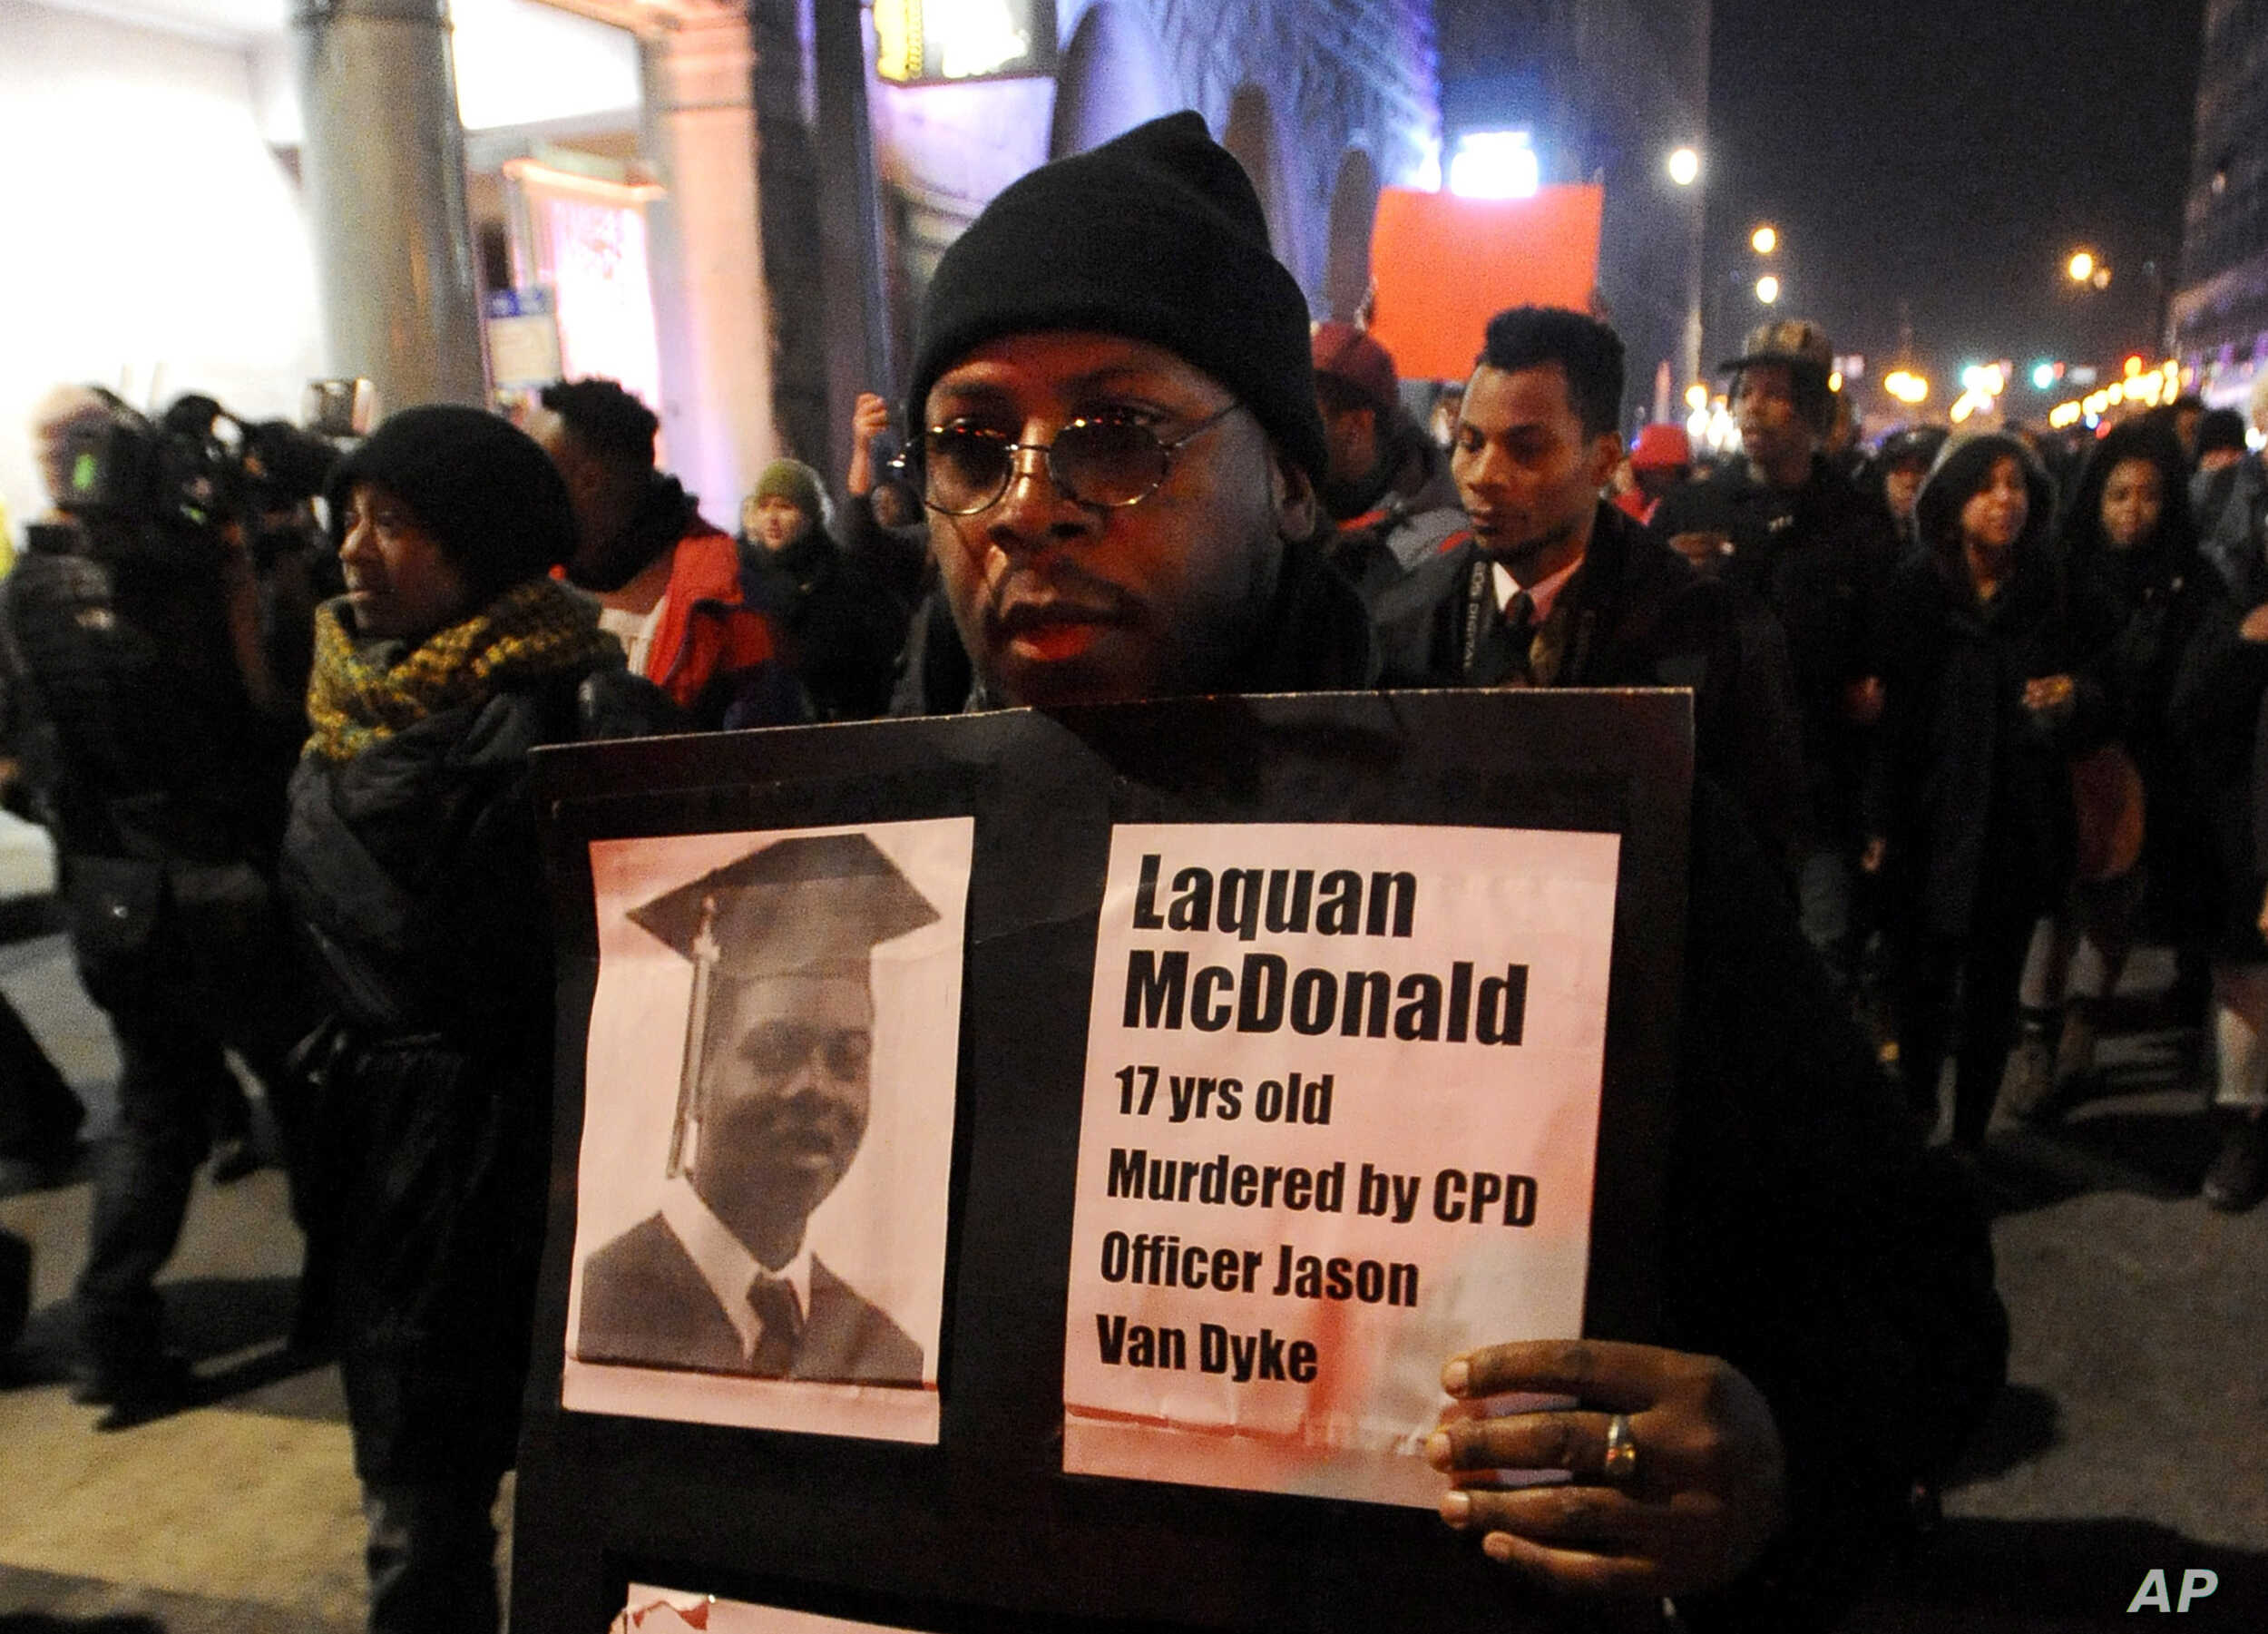 A protester holds a sign as people rally in memory of 17-year-old Laquan McDonald, who was shot 16 times by Chicago Police Department Officer Jason Van Dyke, in Chicago,  Nov. 24, 2015.